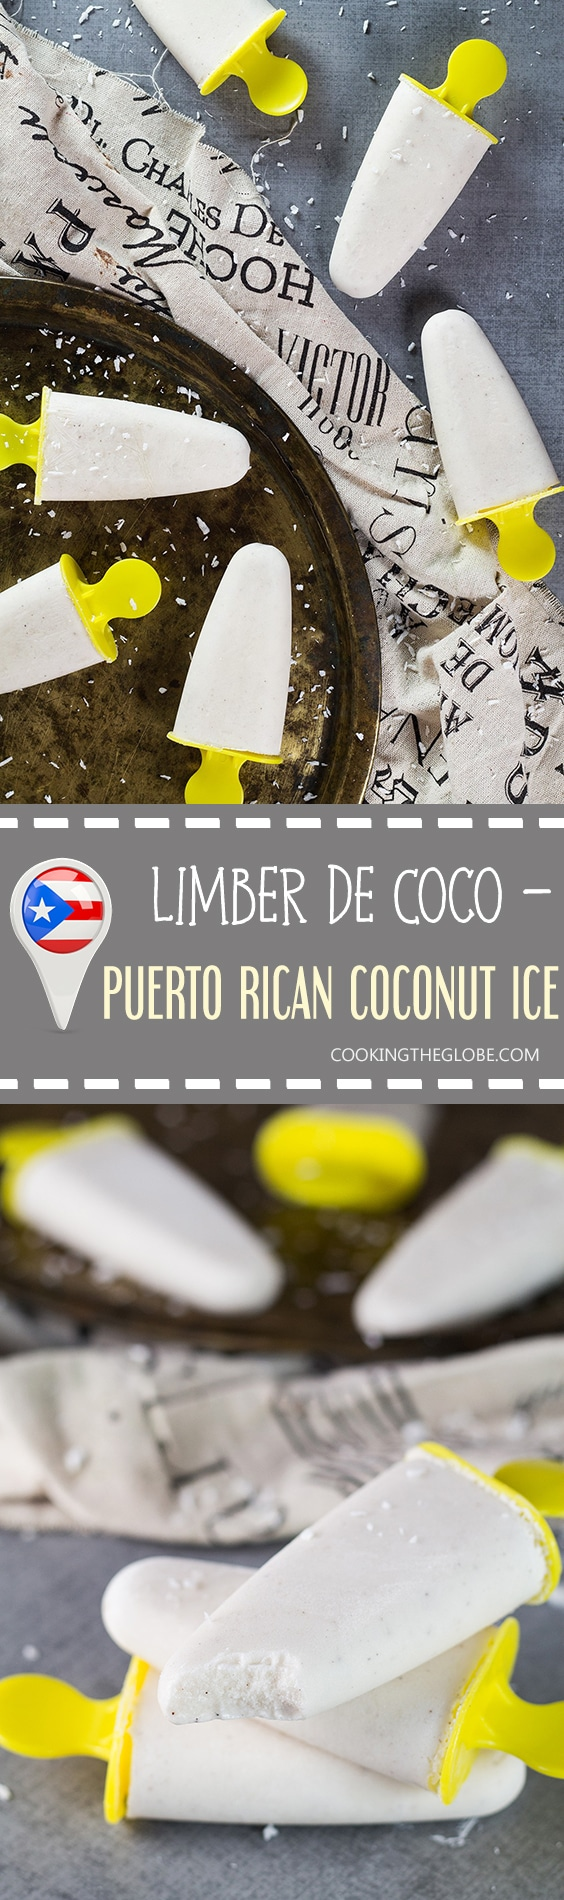 Learn how to make Limber de Coco - a flavorful Caribbean coconut ice native to Puerto Rico. A perfect refresher for a hot summer day! | cookingtheglobe.com